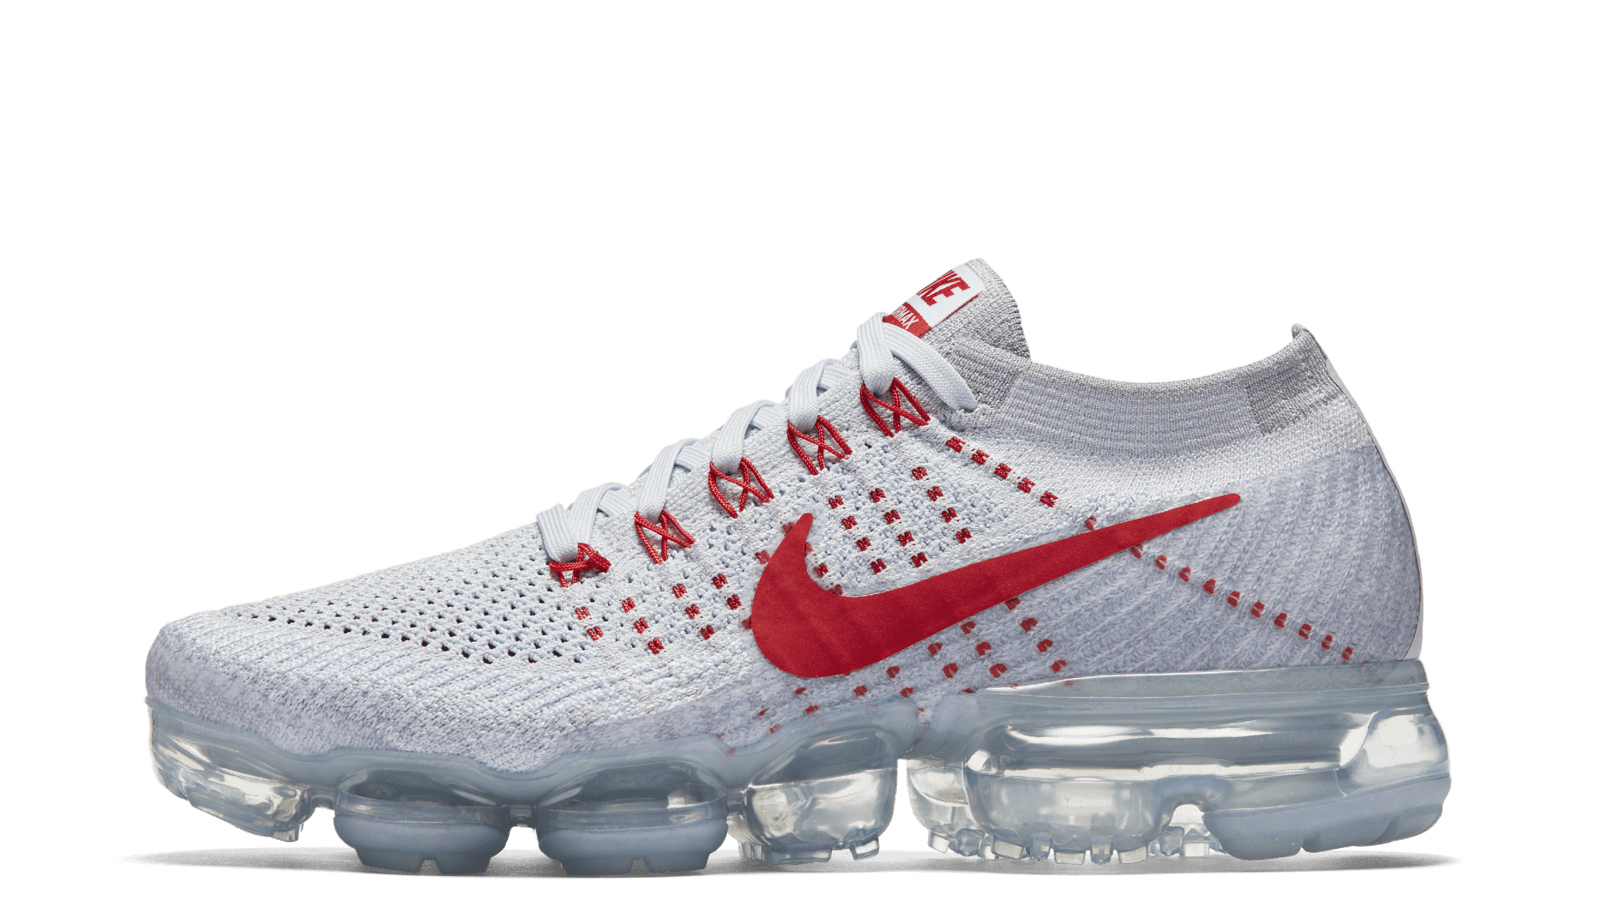 buy online c4d92 63856 Nike News - Nike Air VaporMax Reveals the Pinnacle of Air